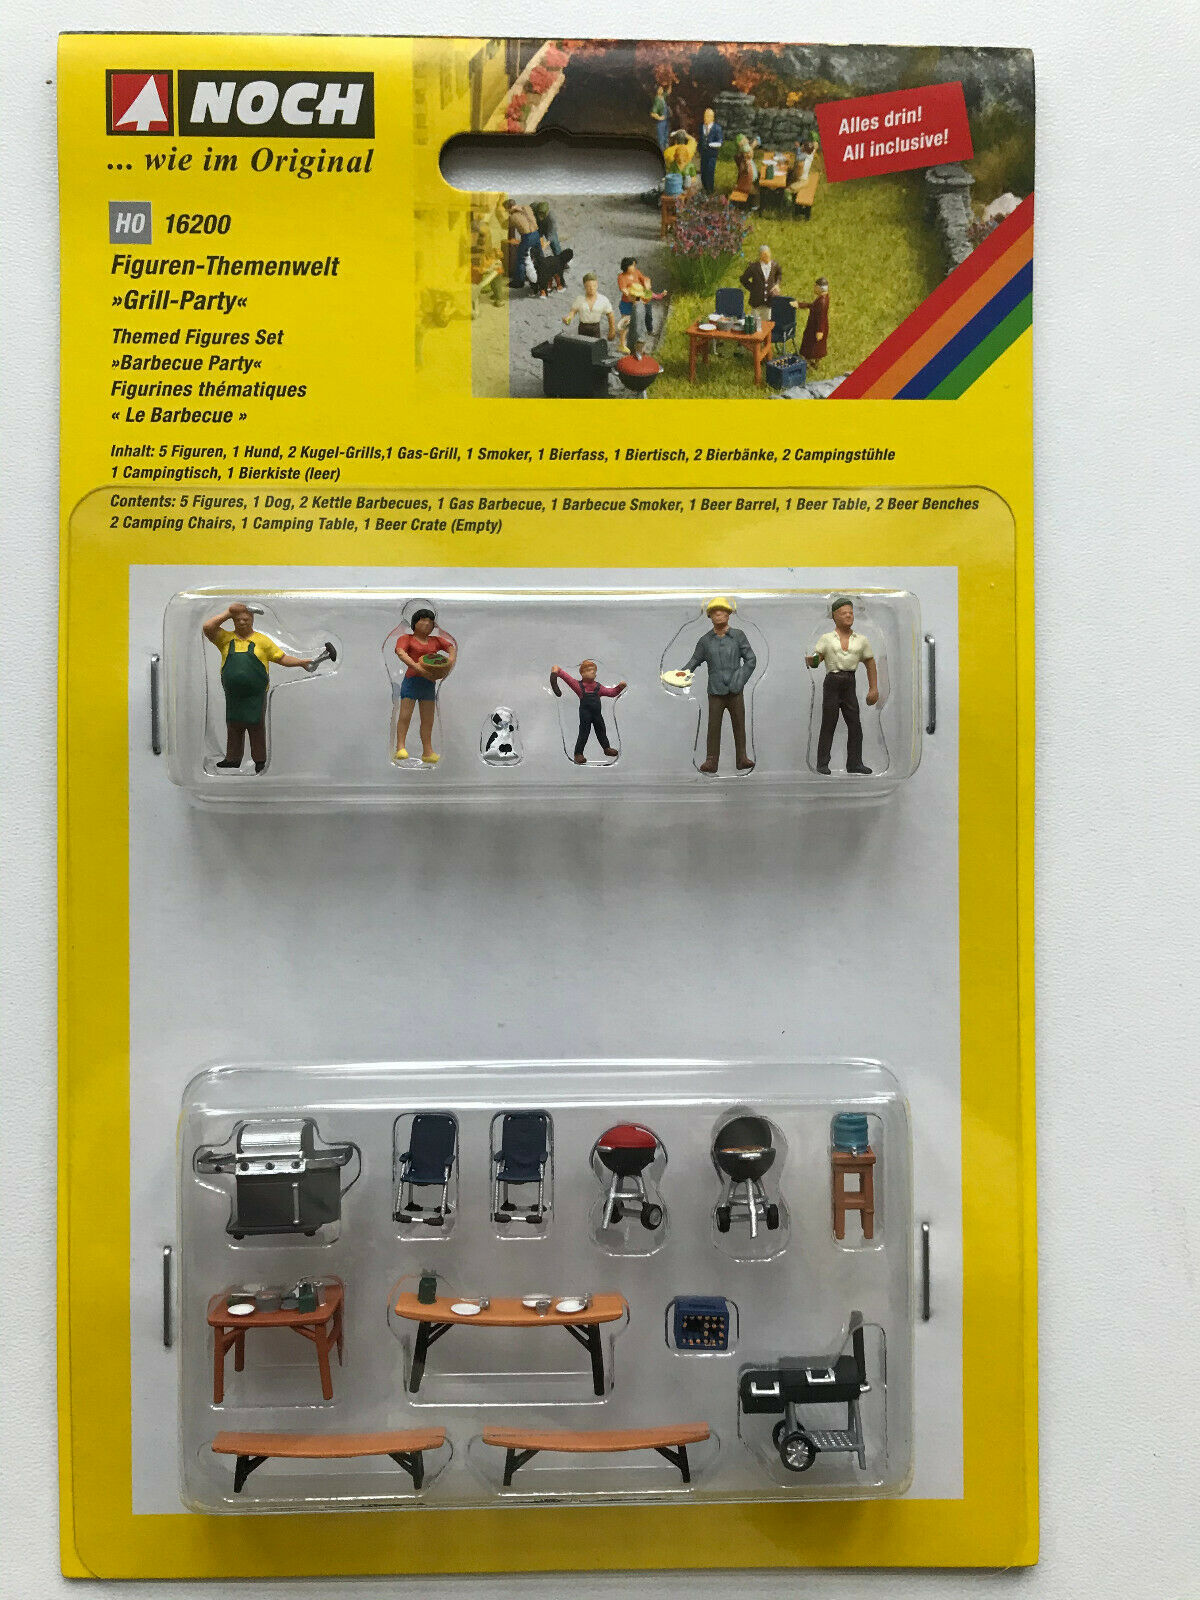 16200 Noch HO Set personaggi e accessori Barbecue Party come da foto scala 1:87